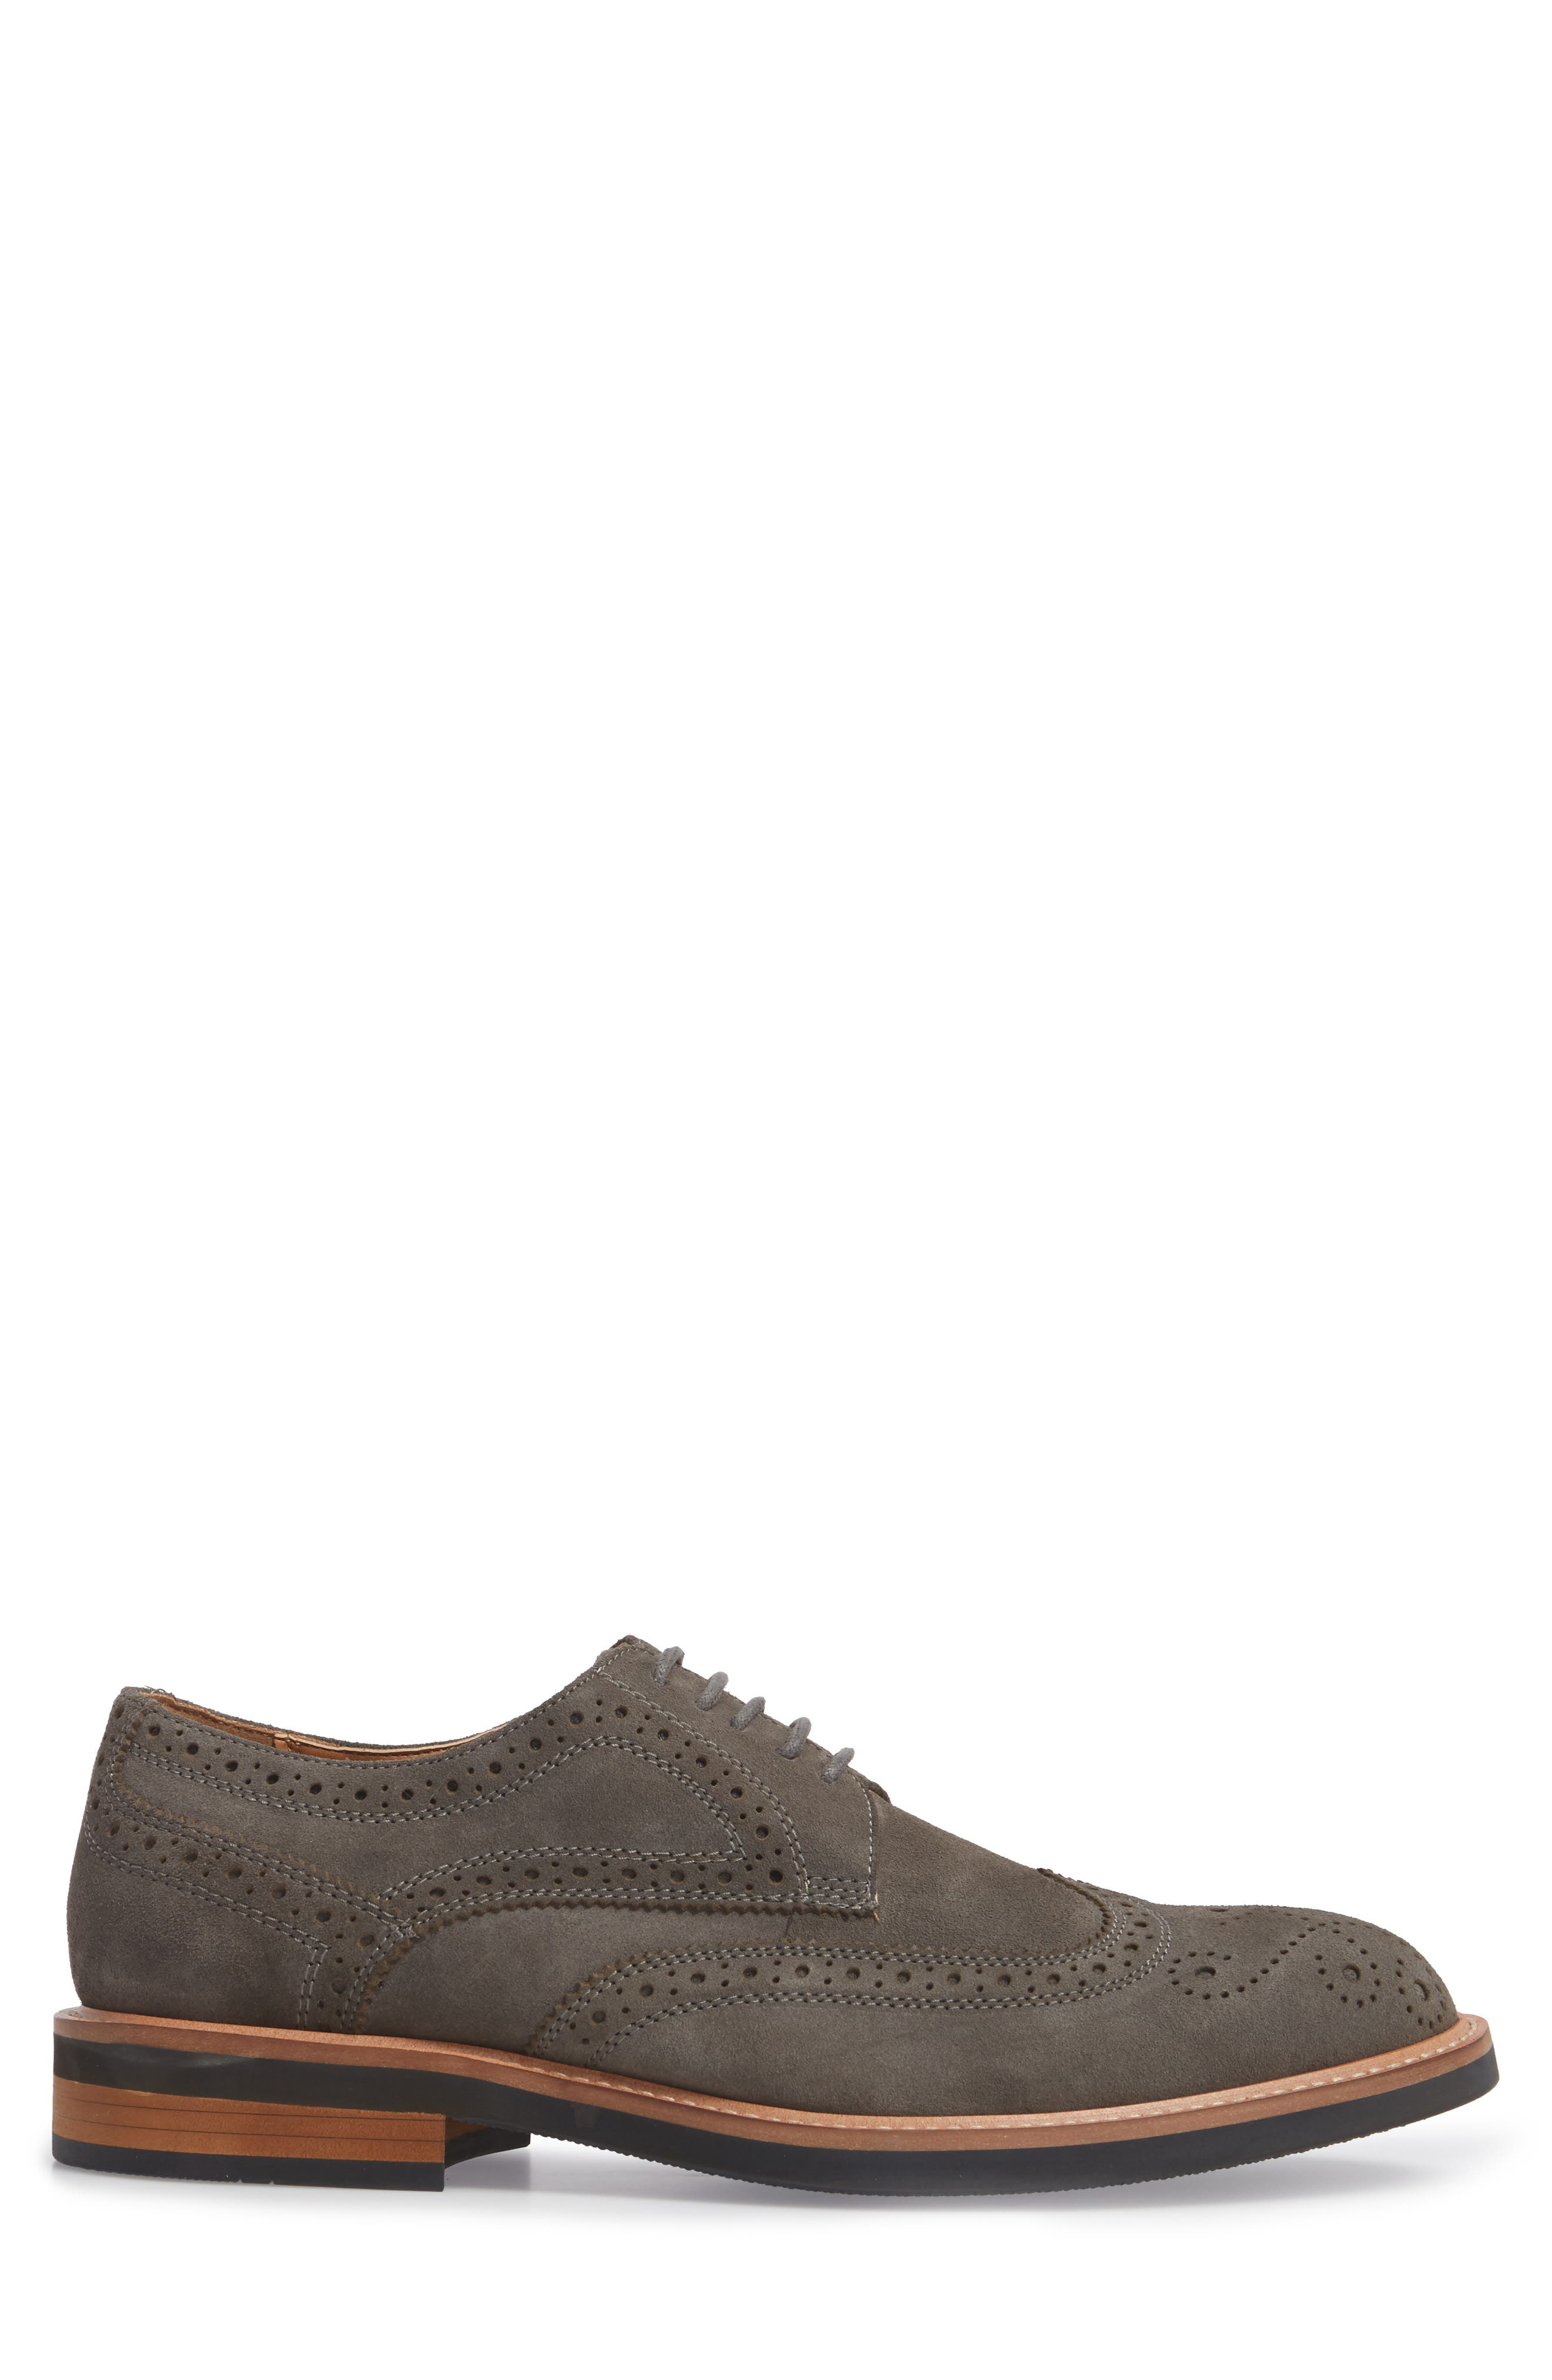 Kenneth Cole Reaction Wingtip,                             Alternate thumbnail 3, color,                             Grey